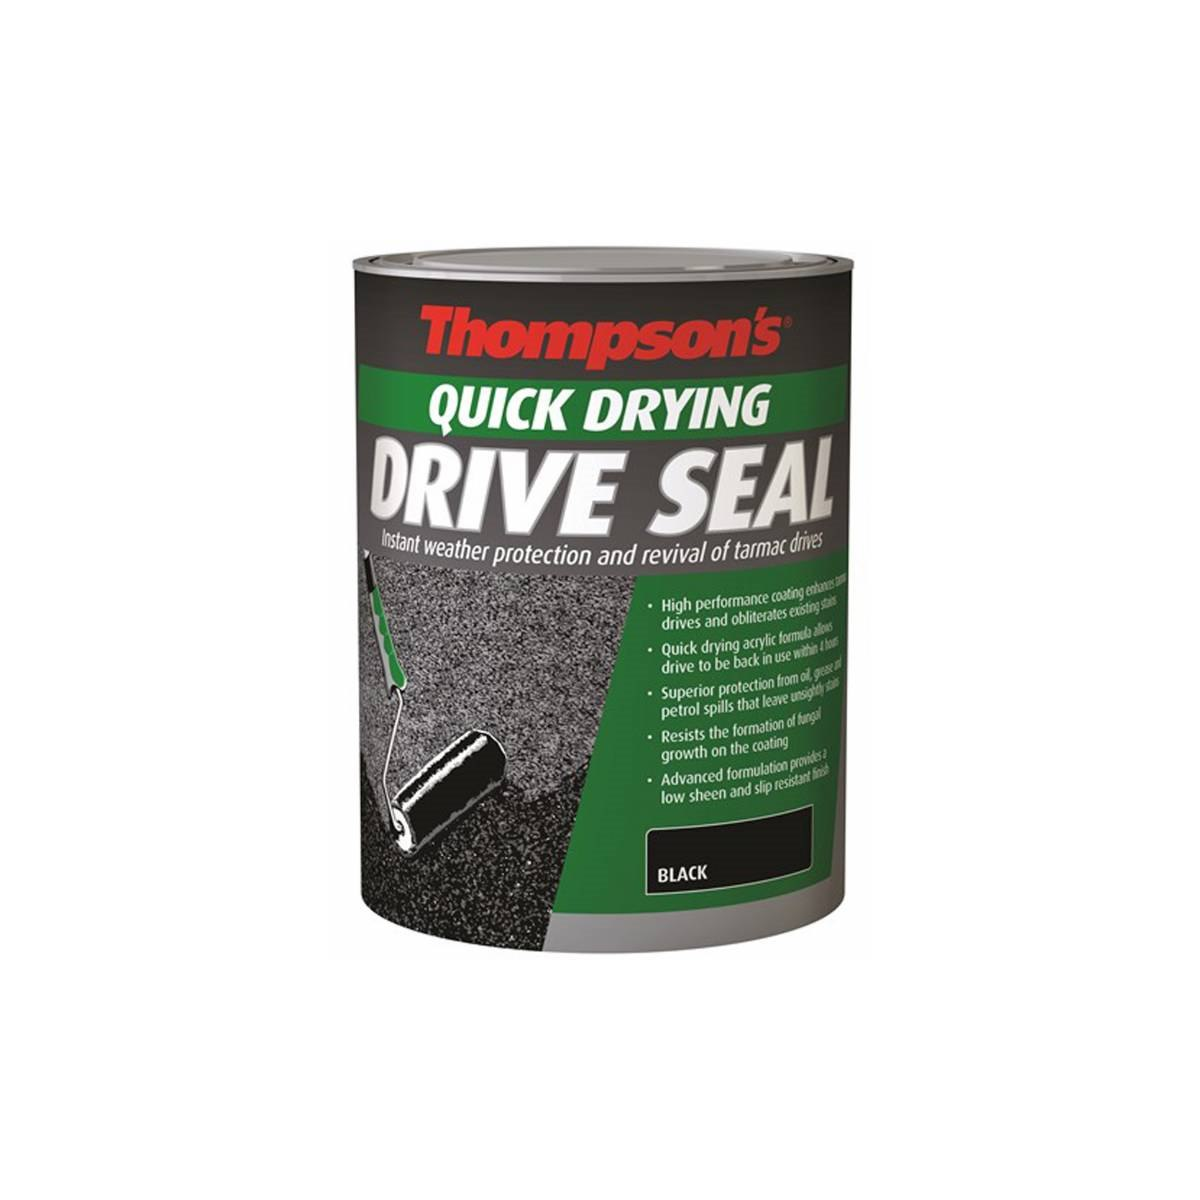 Thompson's Quick Drying Tarmac Drive Seal 5 litre